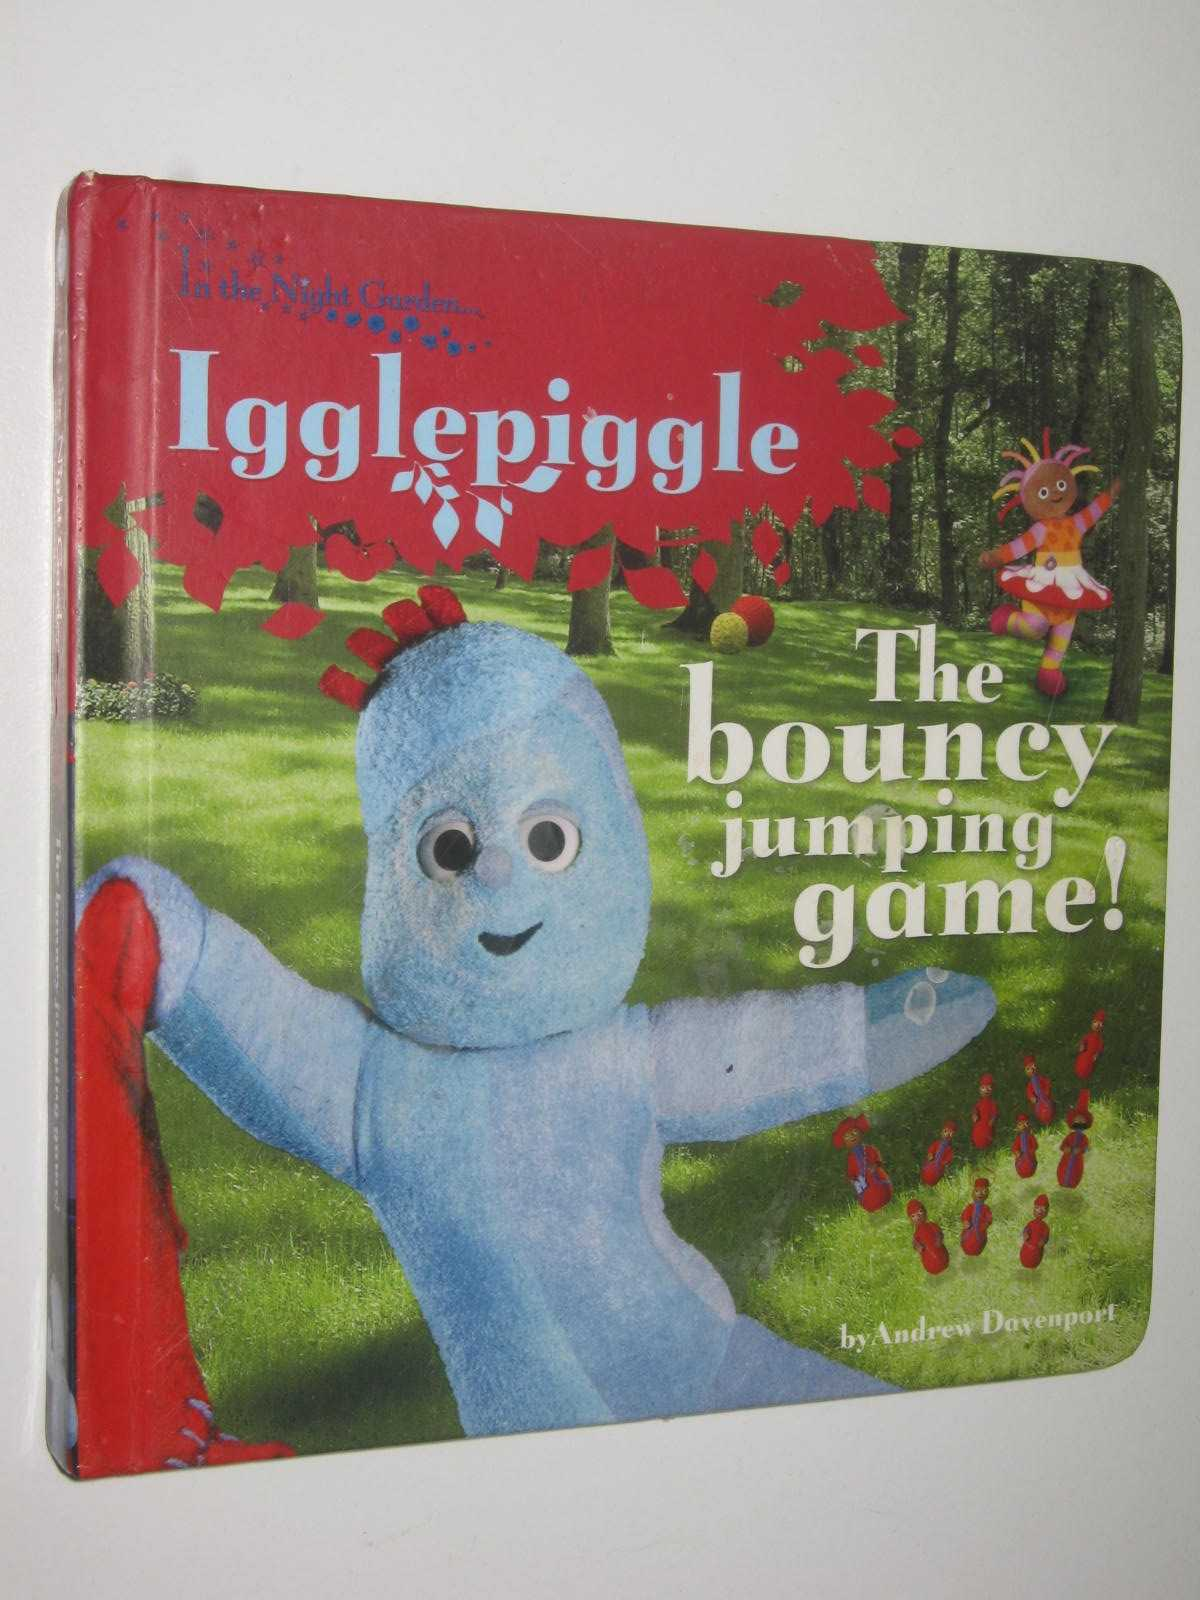 Image for In The Night Garden : The Bouncy Jumping Game! + All Aboard The Ninky Nonk! + The Happy Waving Game! + Upsy Daisy Wants To Sing!